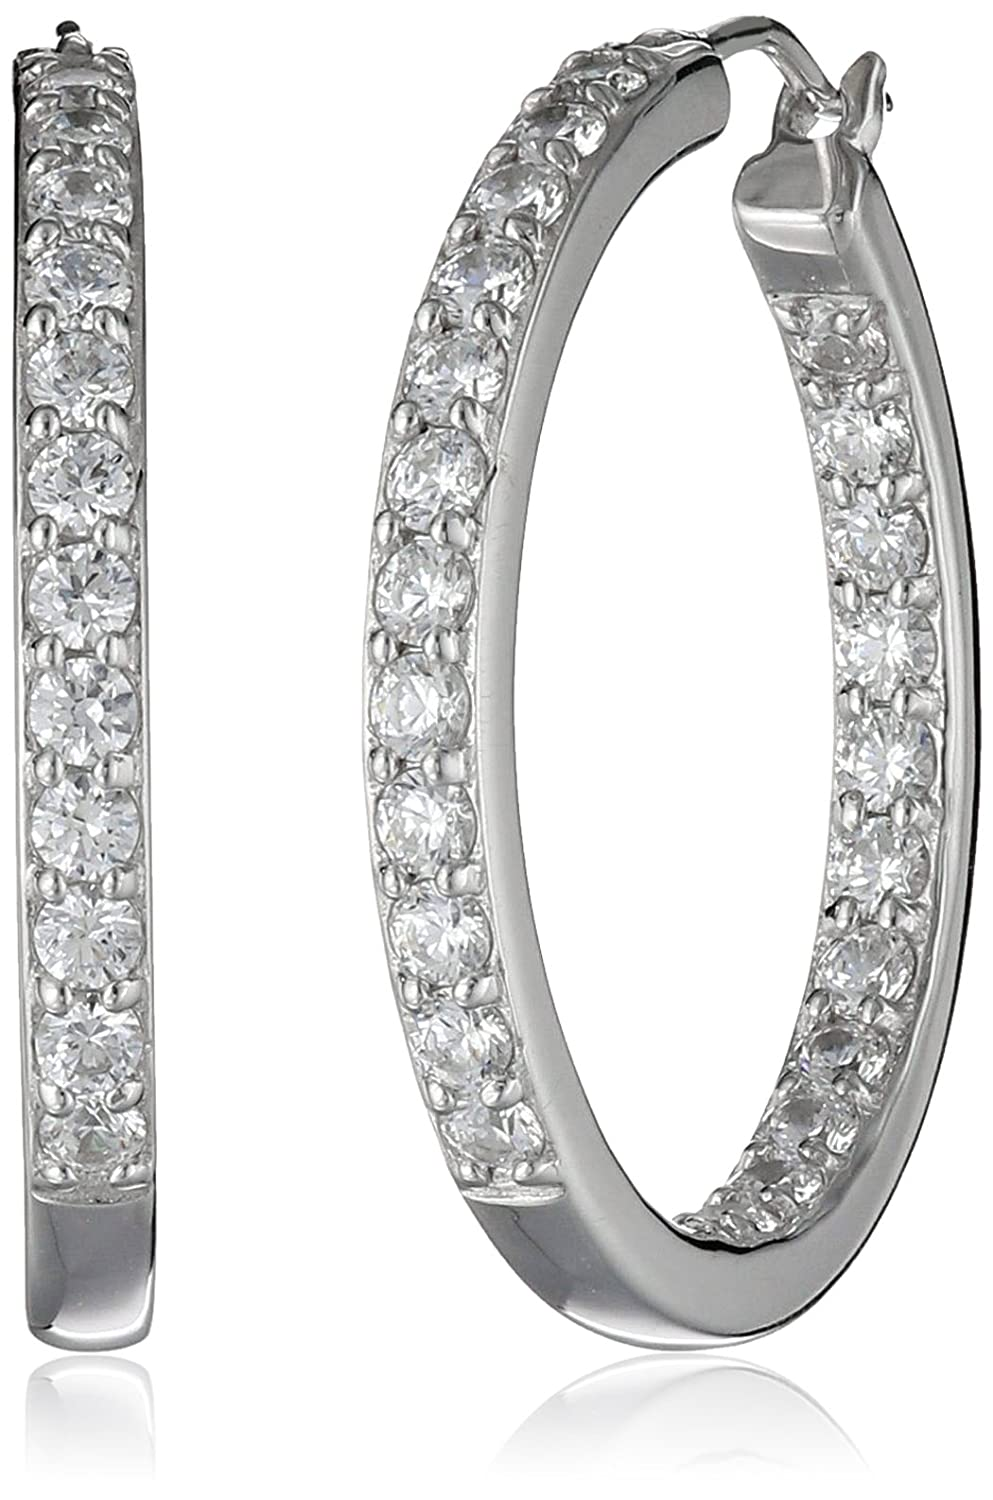 La Lumiere Platinum Plated Sterling Silver and Swarovski Zirconia (3cttw) Inside-Out Hoop Earrings 6pqtJff